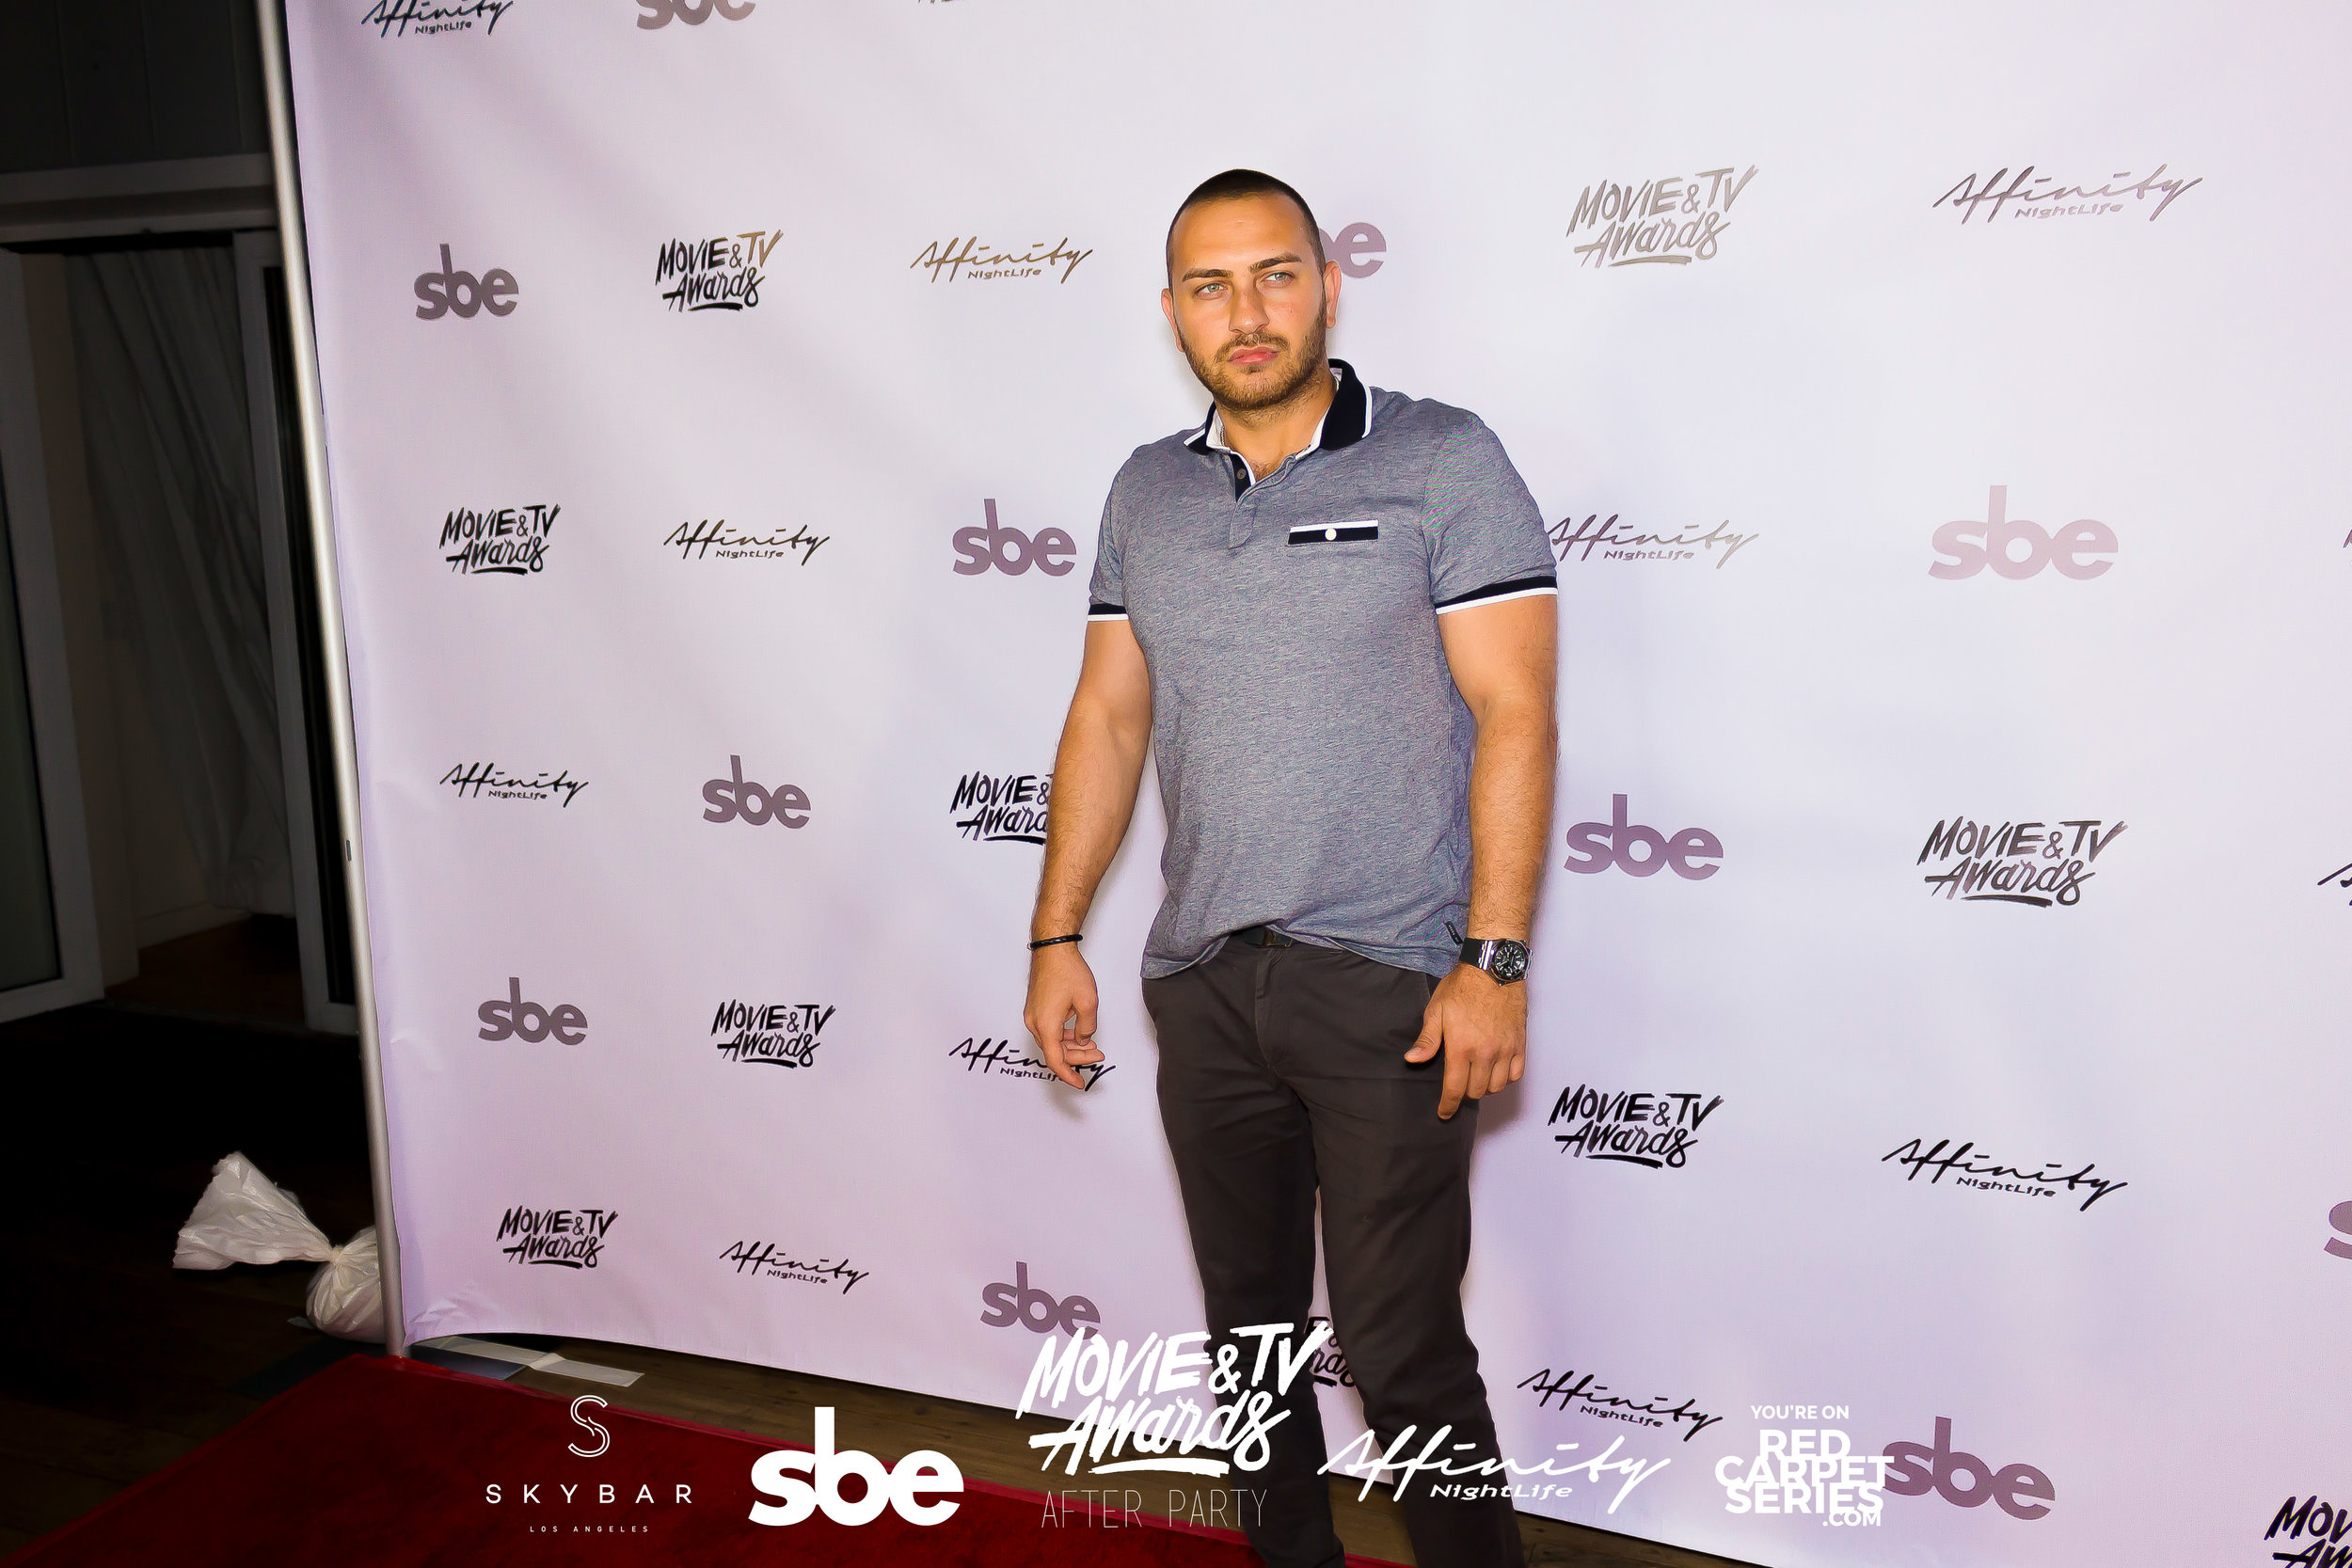 Affinity Nightlife MTV Movie & TV Awards After Party - Skybar at Mondrian - 06-15-19 - Vol. 1_14.jpg